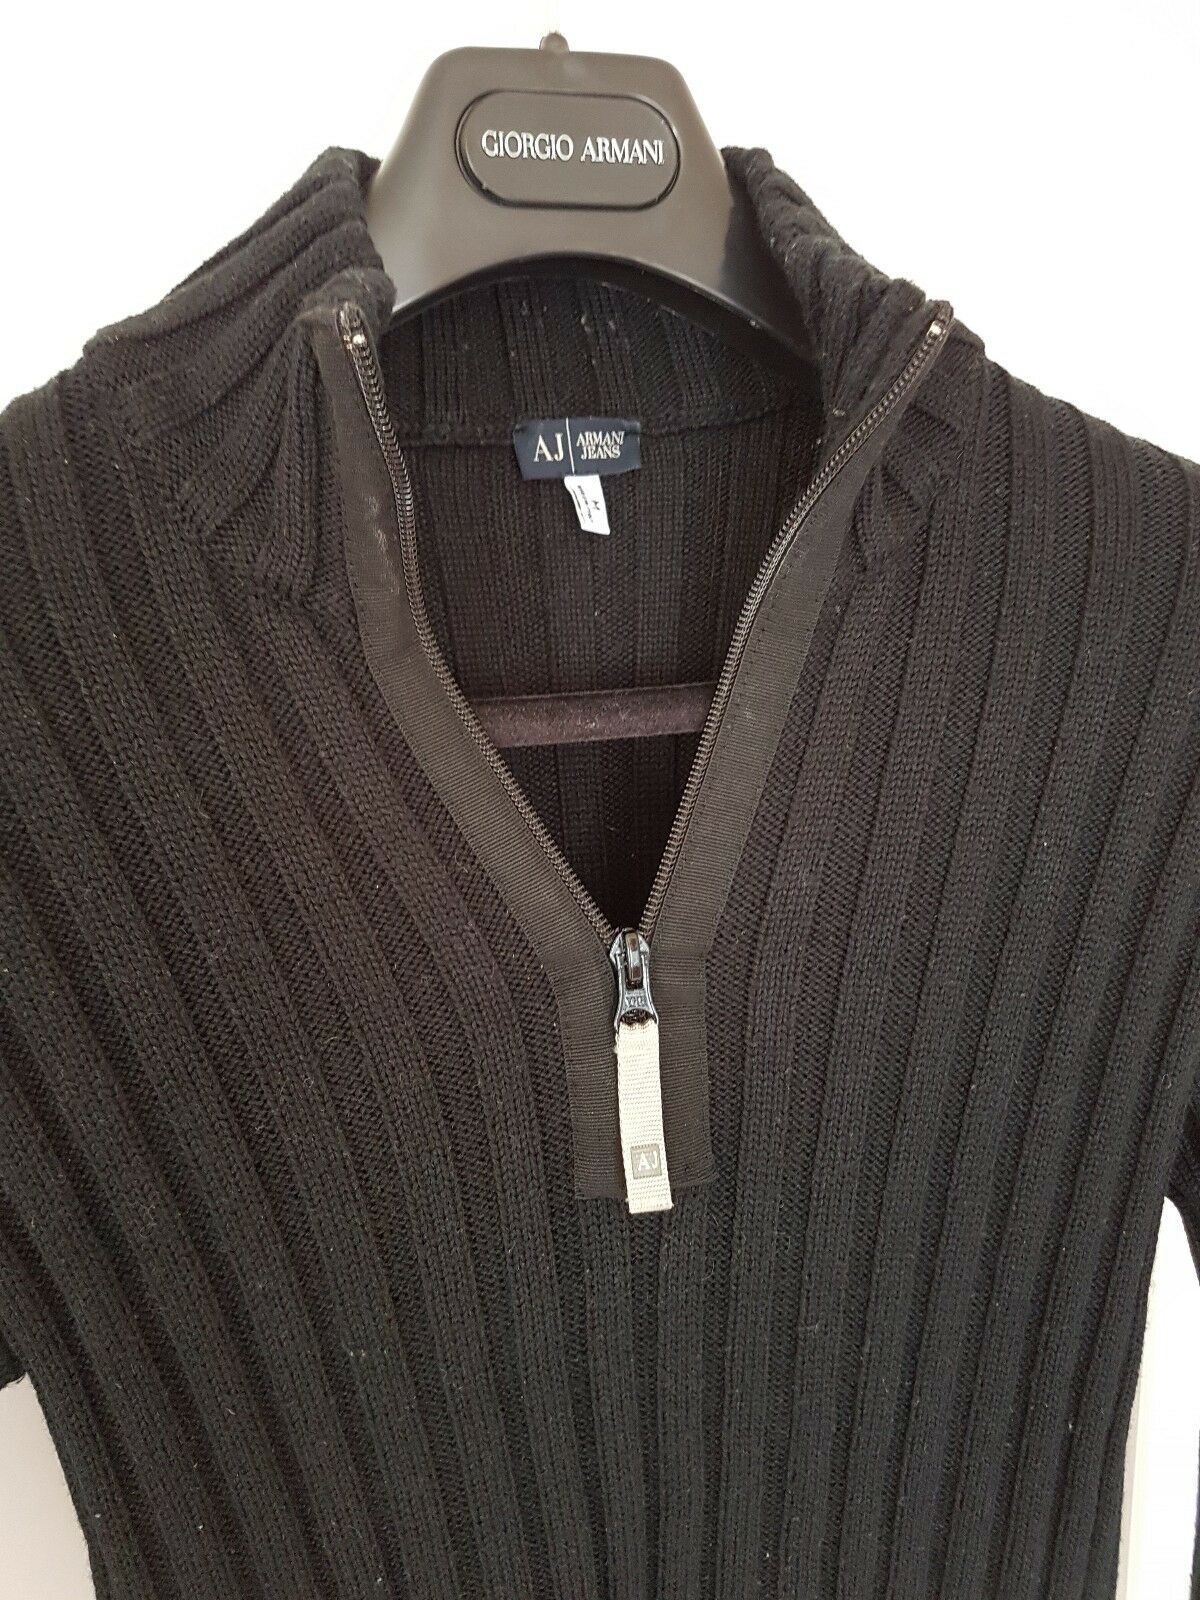 Mens ARMANI JEANS lambswool mix 1 4 Zip Jumper Sweater Größe med small.